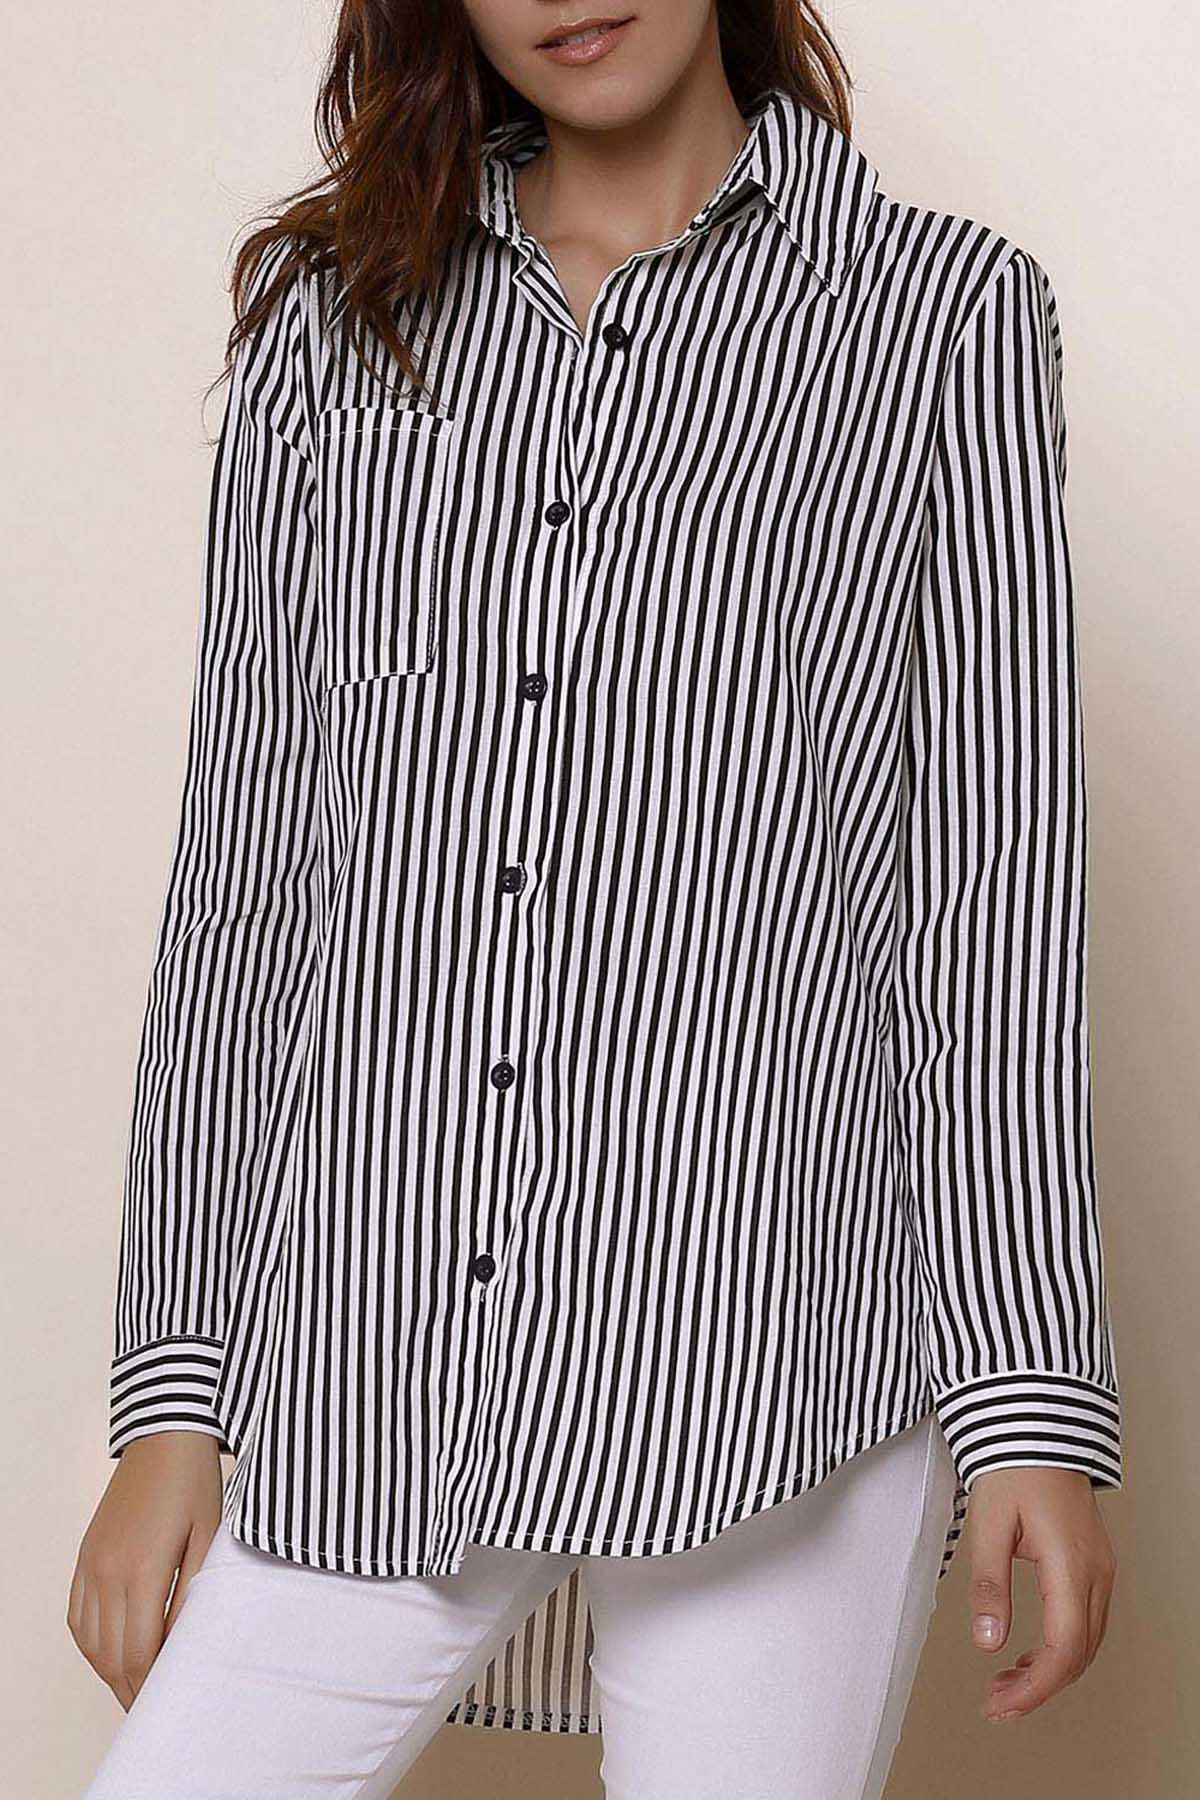 Chic Long Sleeve Shirt Collar Striped Women's Shirt